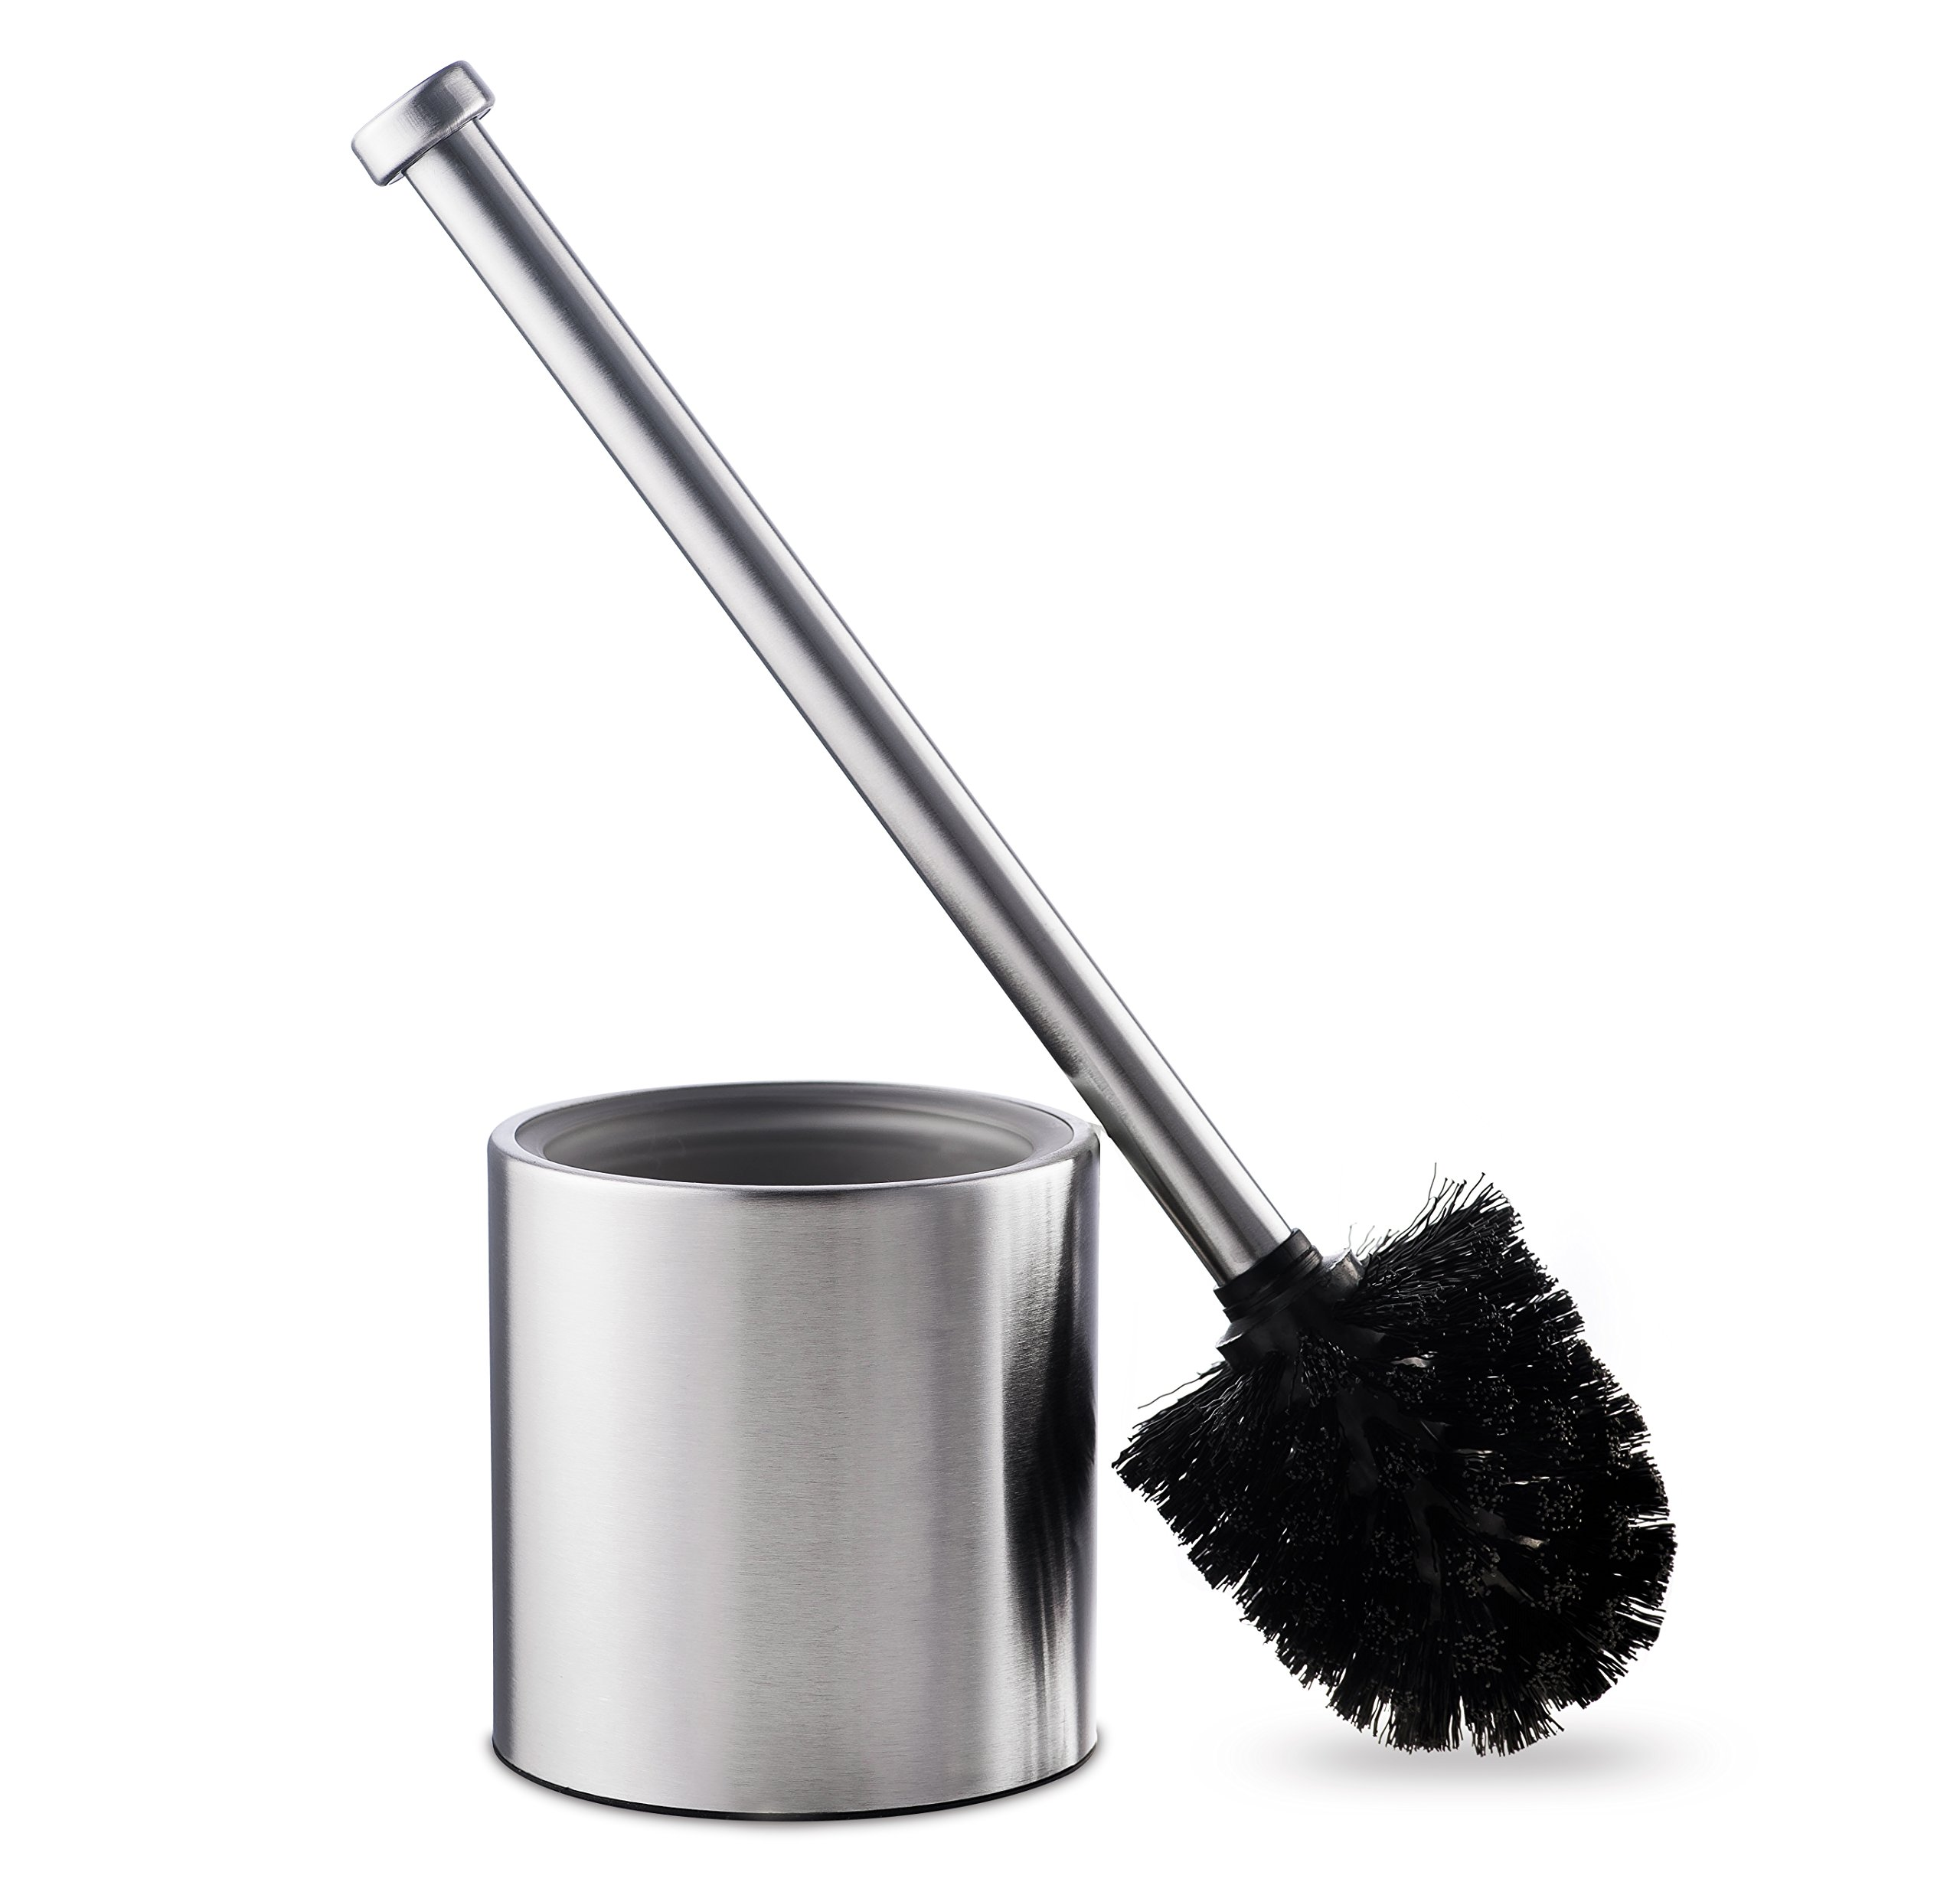 AMG and Enchante Accessories, Toilet Brush and Holder, TB116A SNI, Satin Nickel